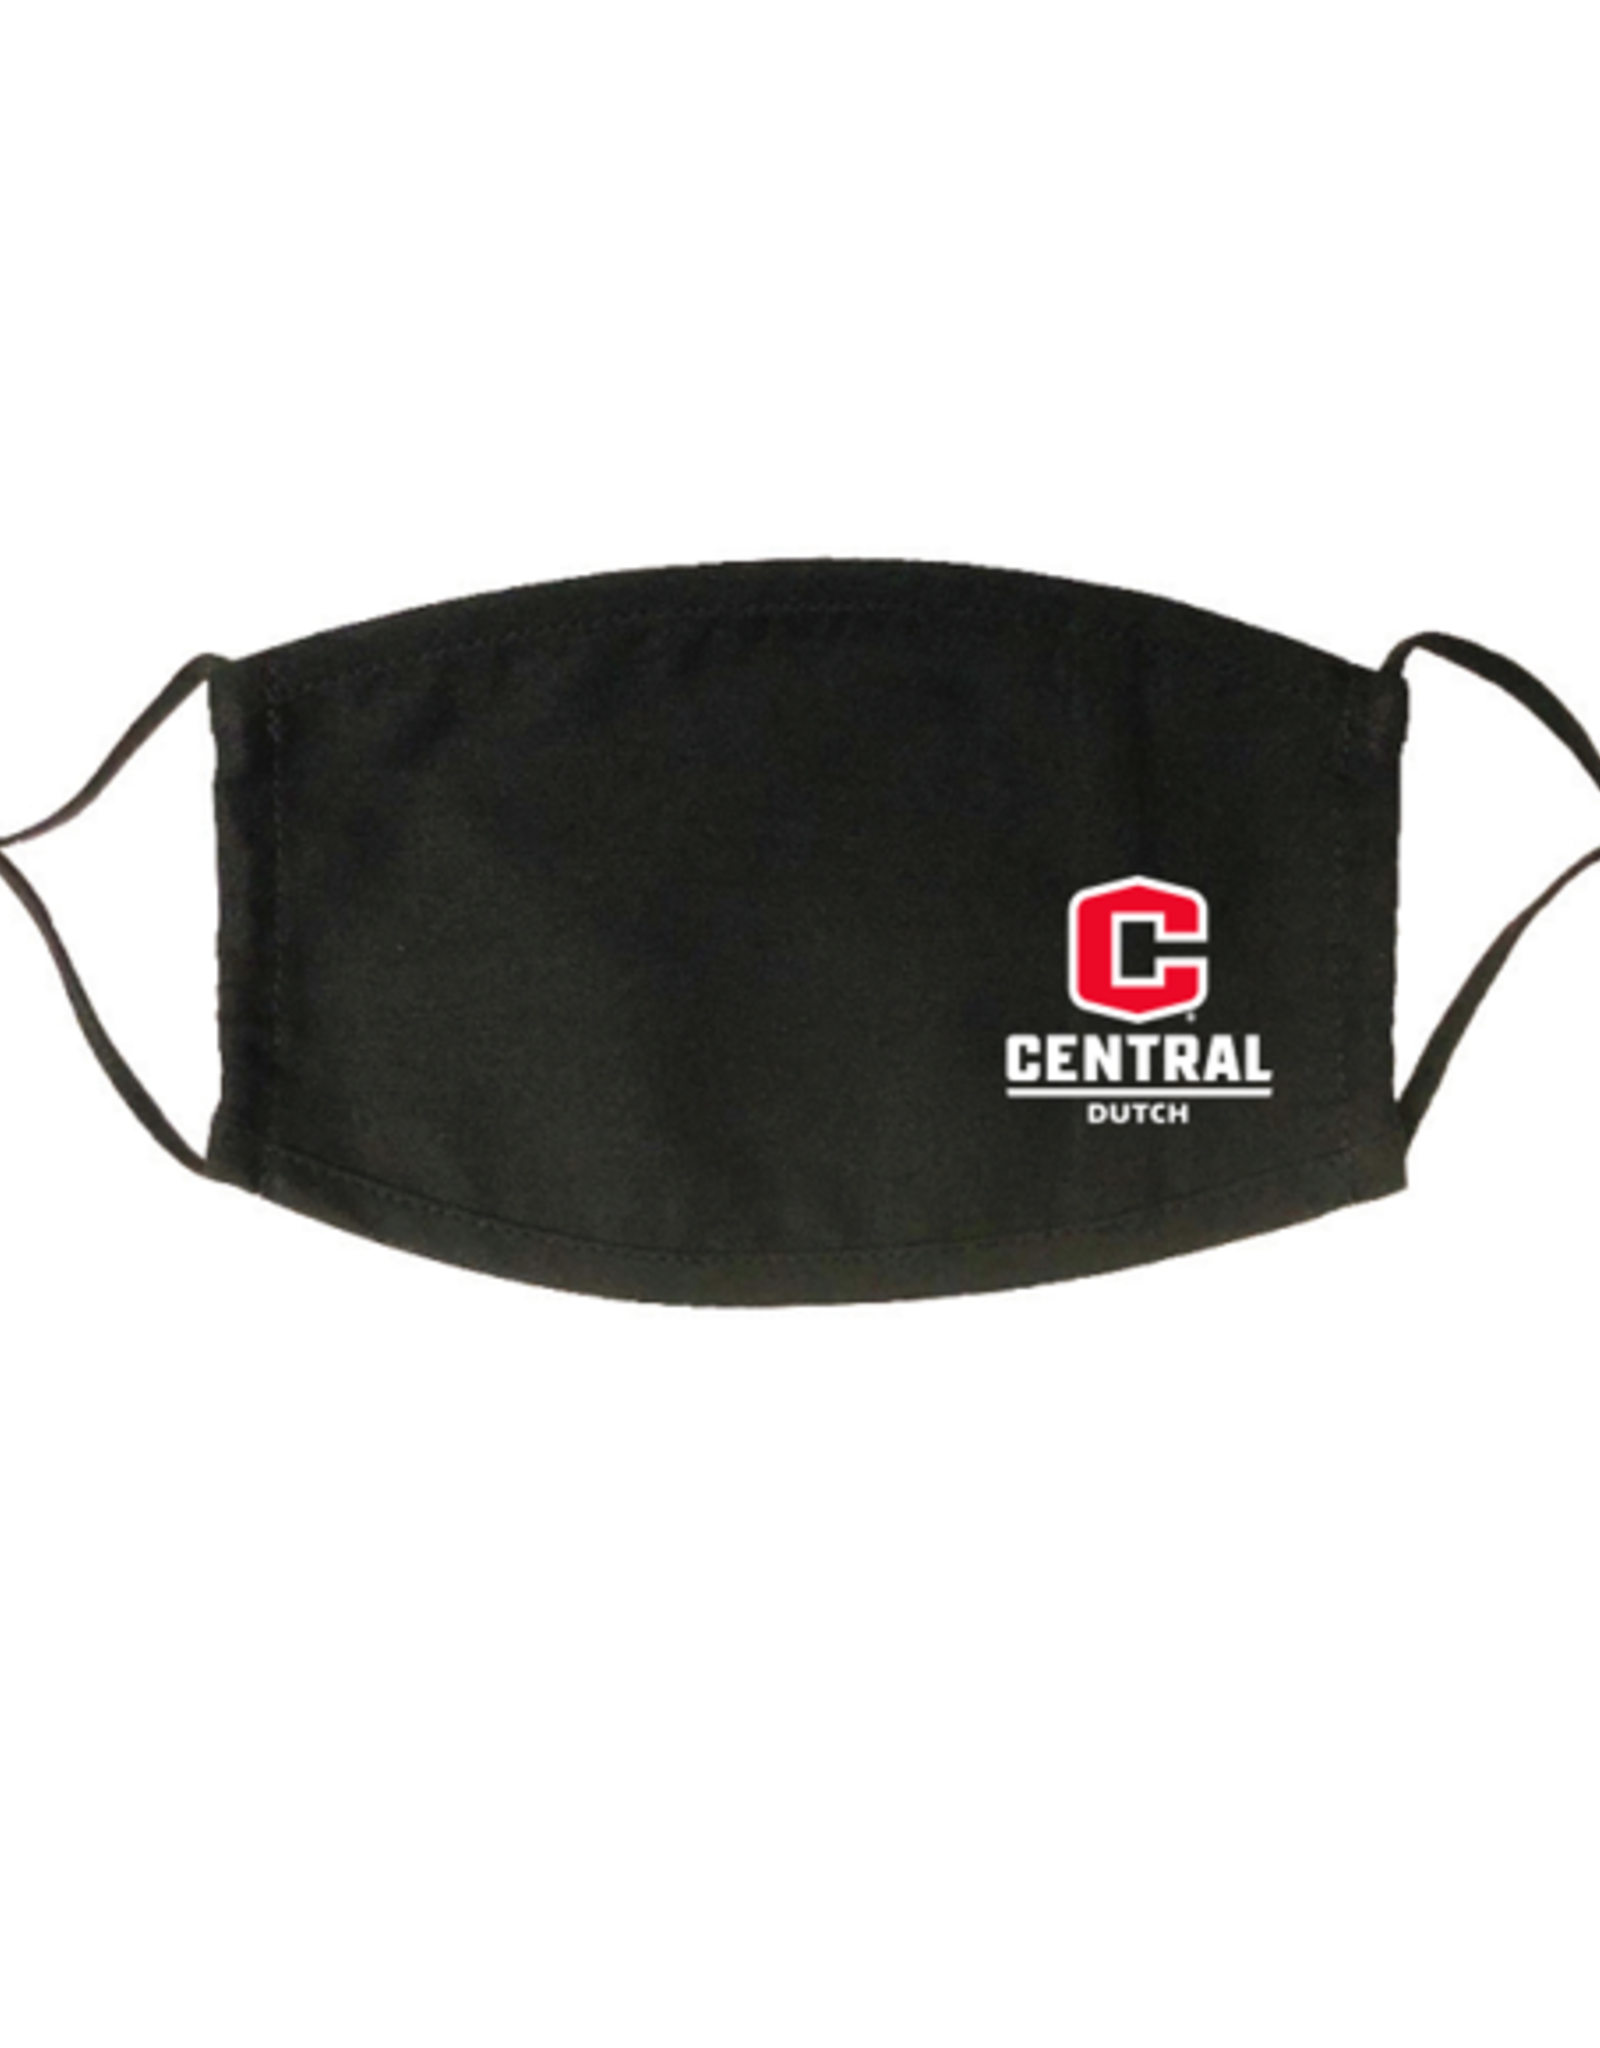 Competitive Edge CE Mask Black with Logo